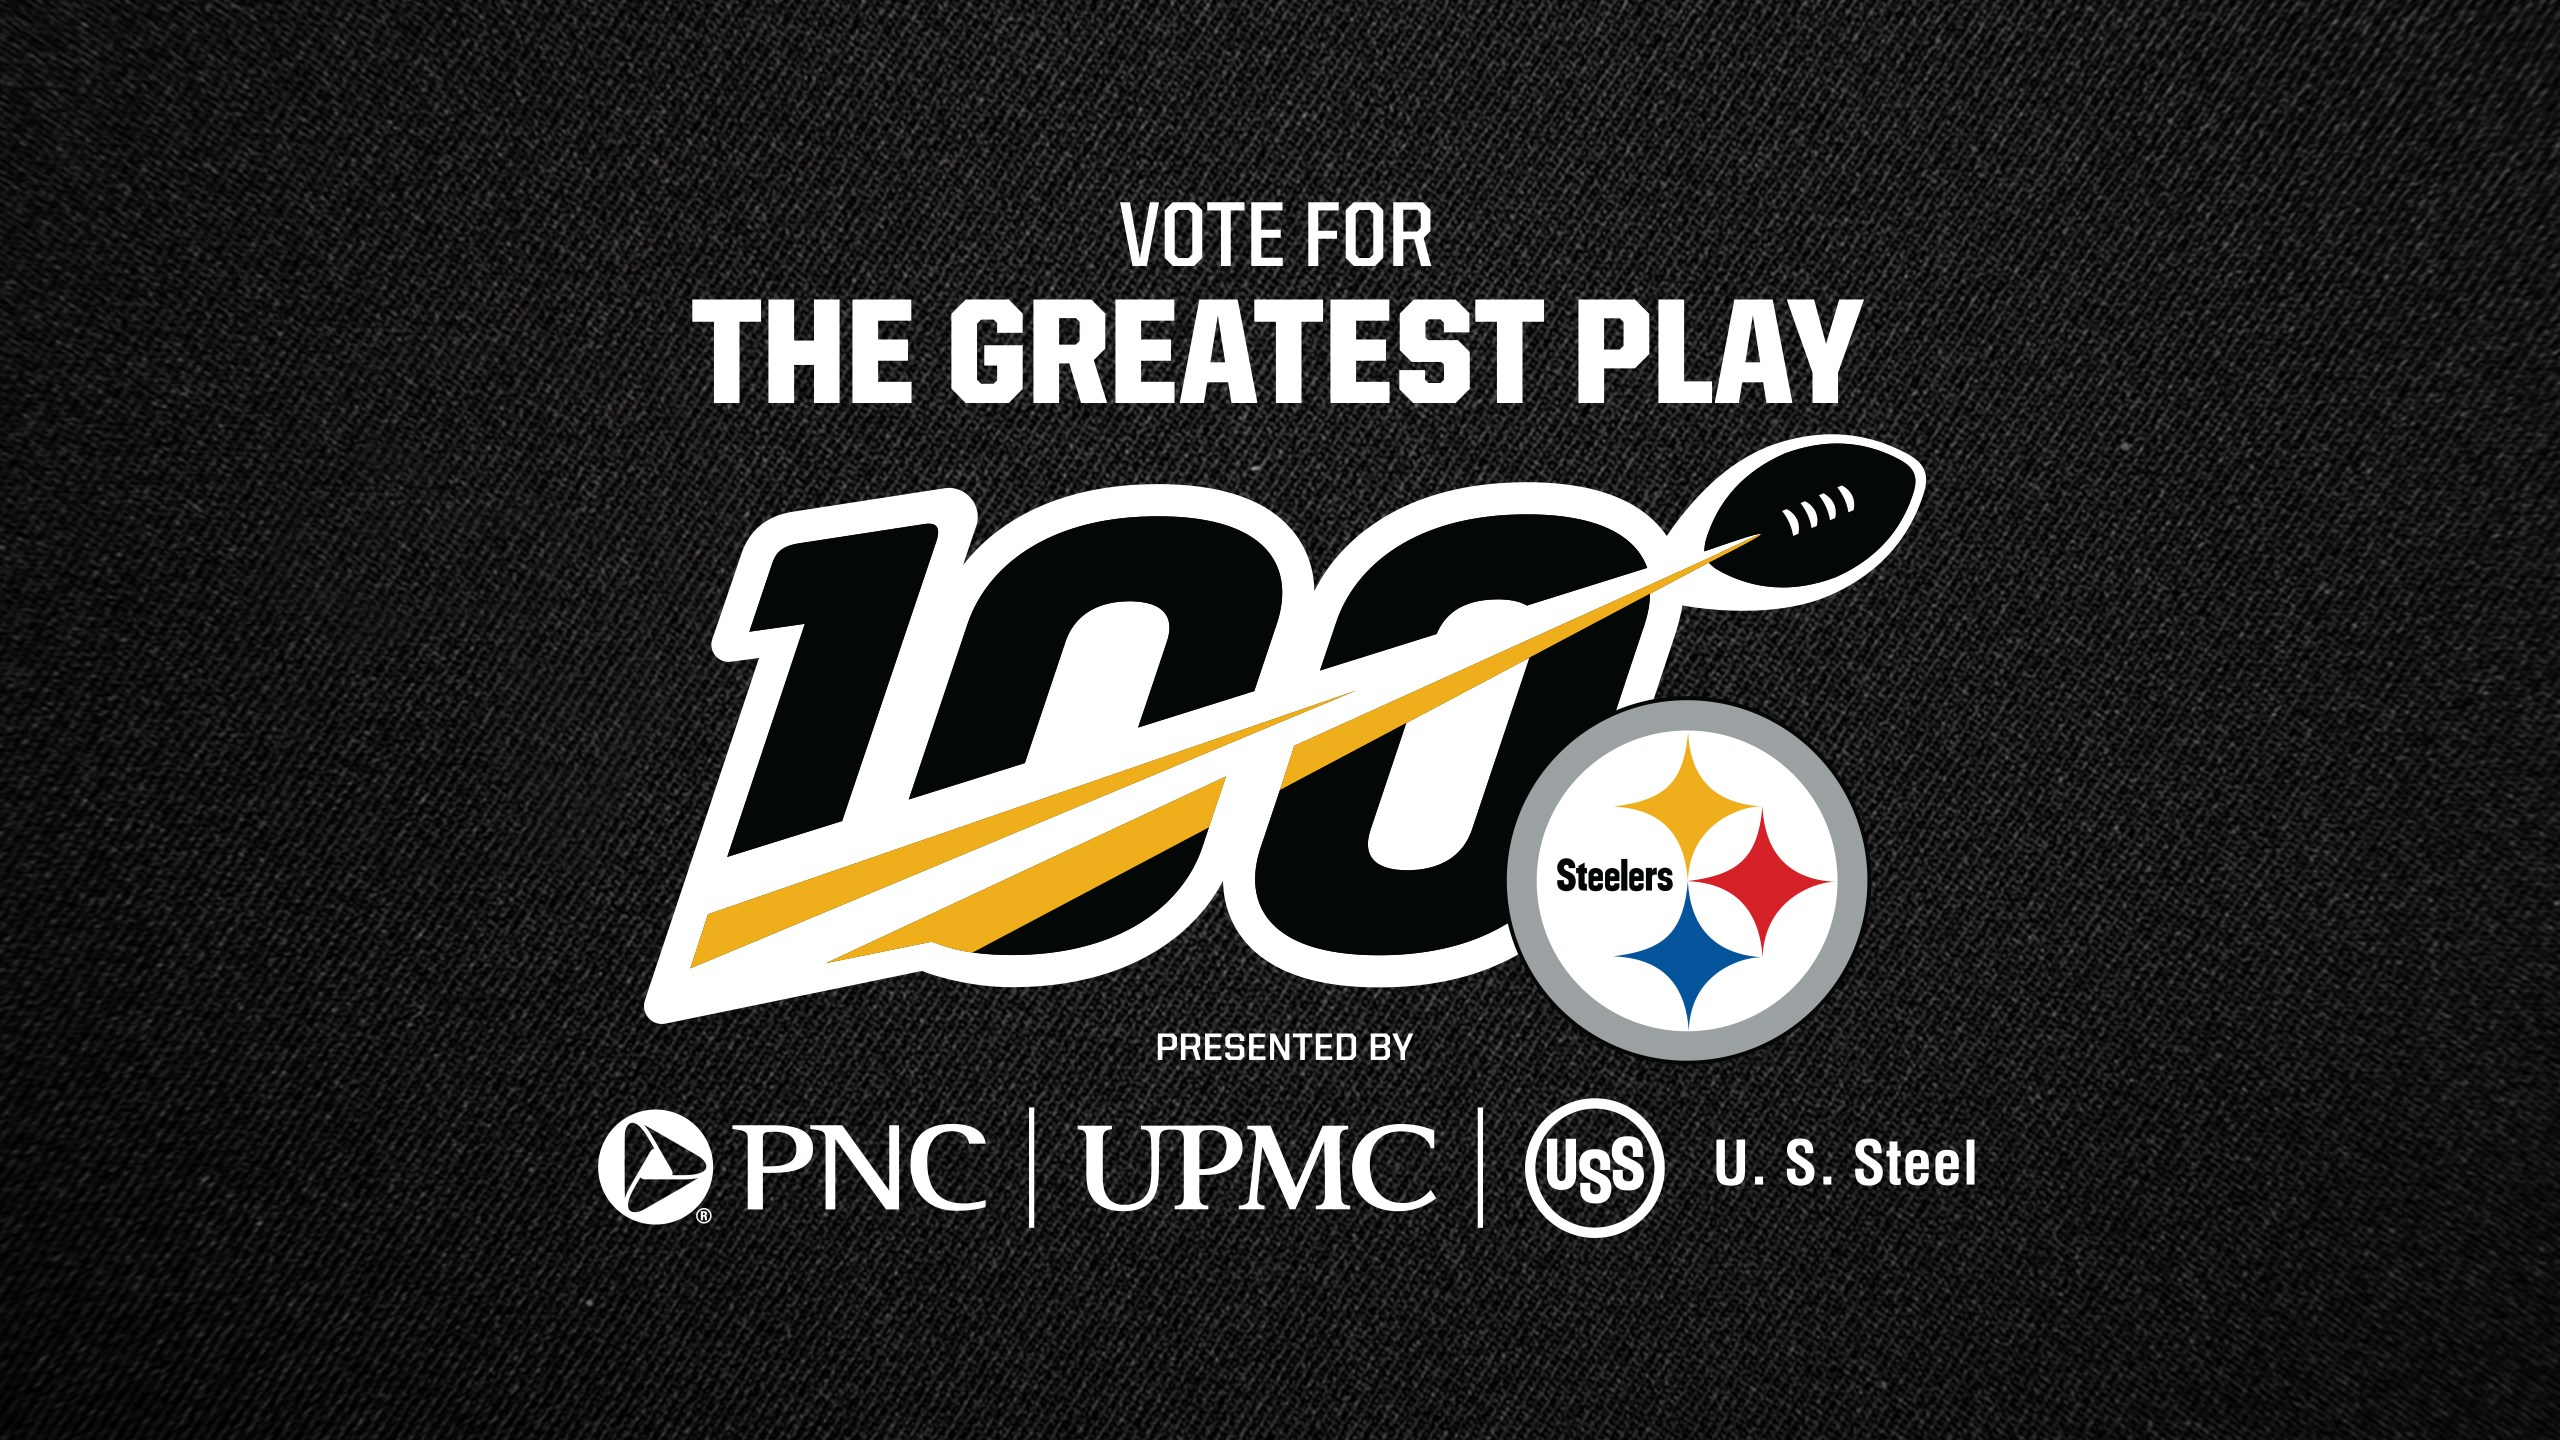 Vote for the greatest play in Steelers history